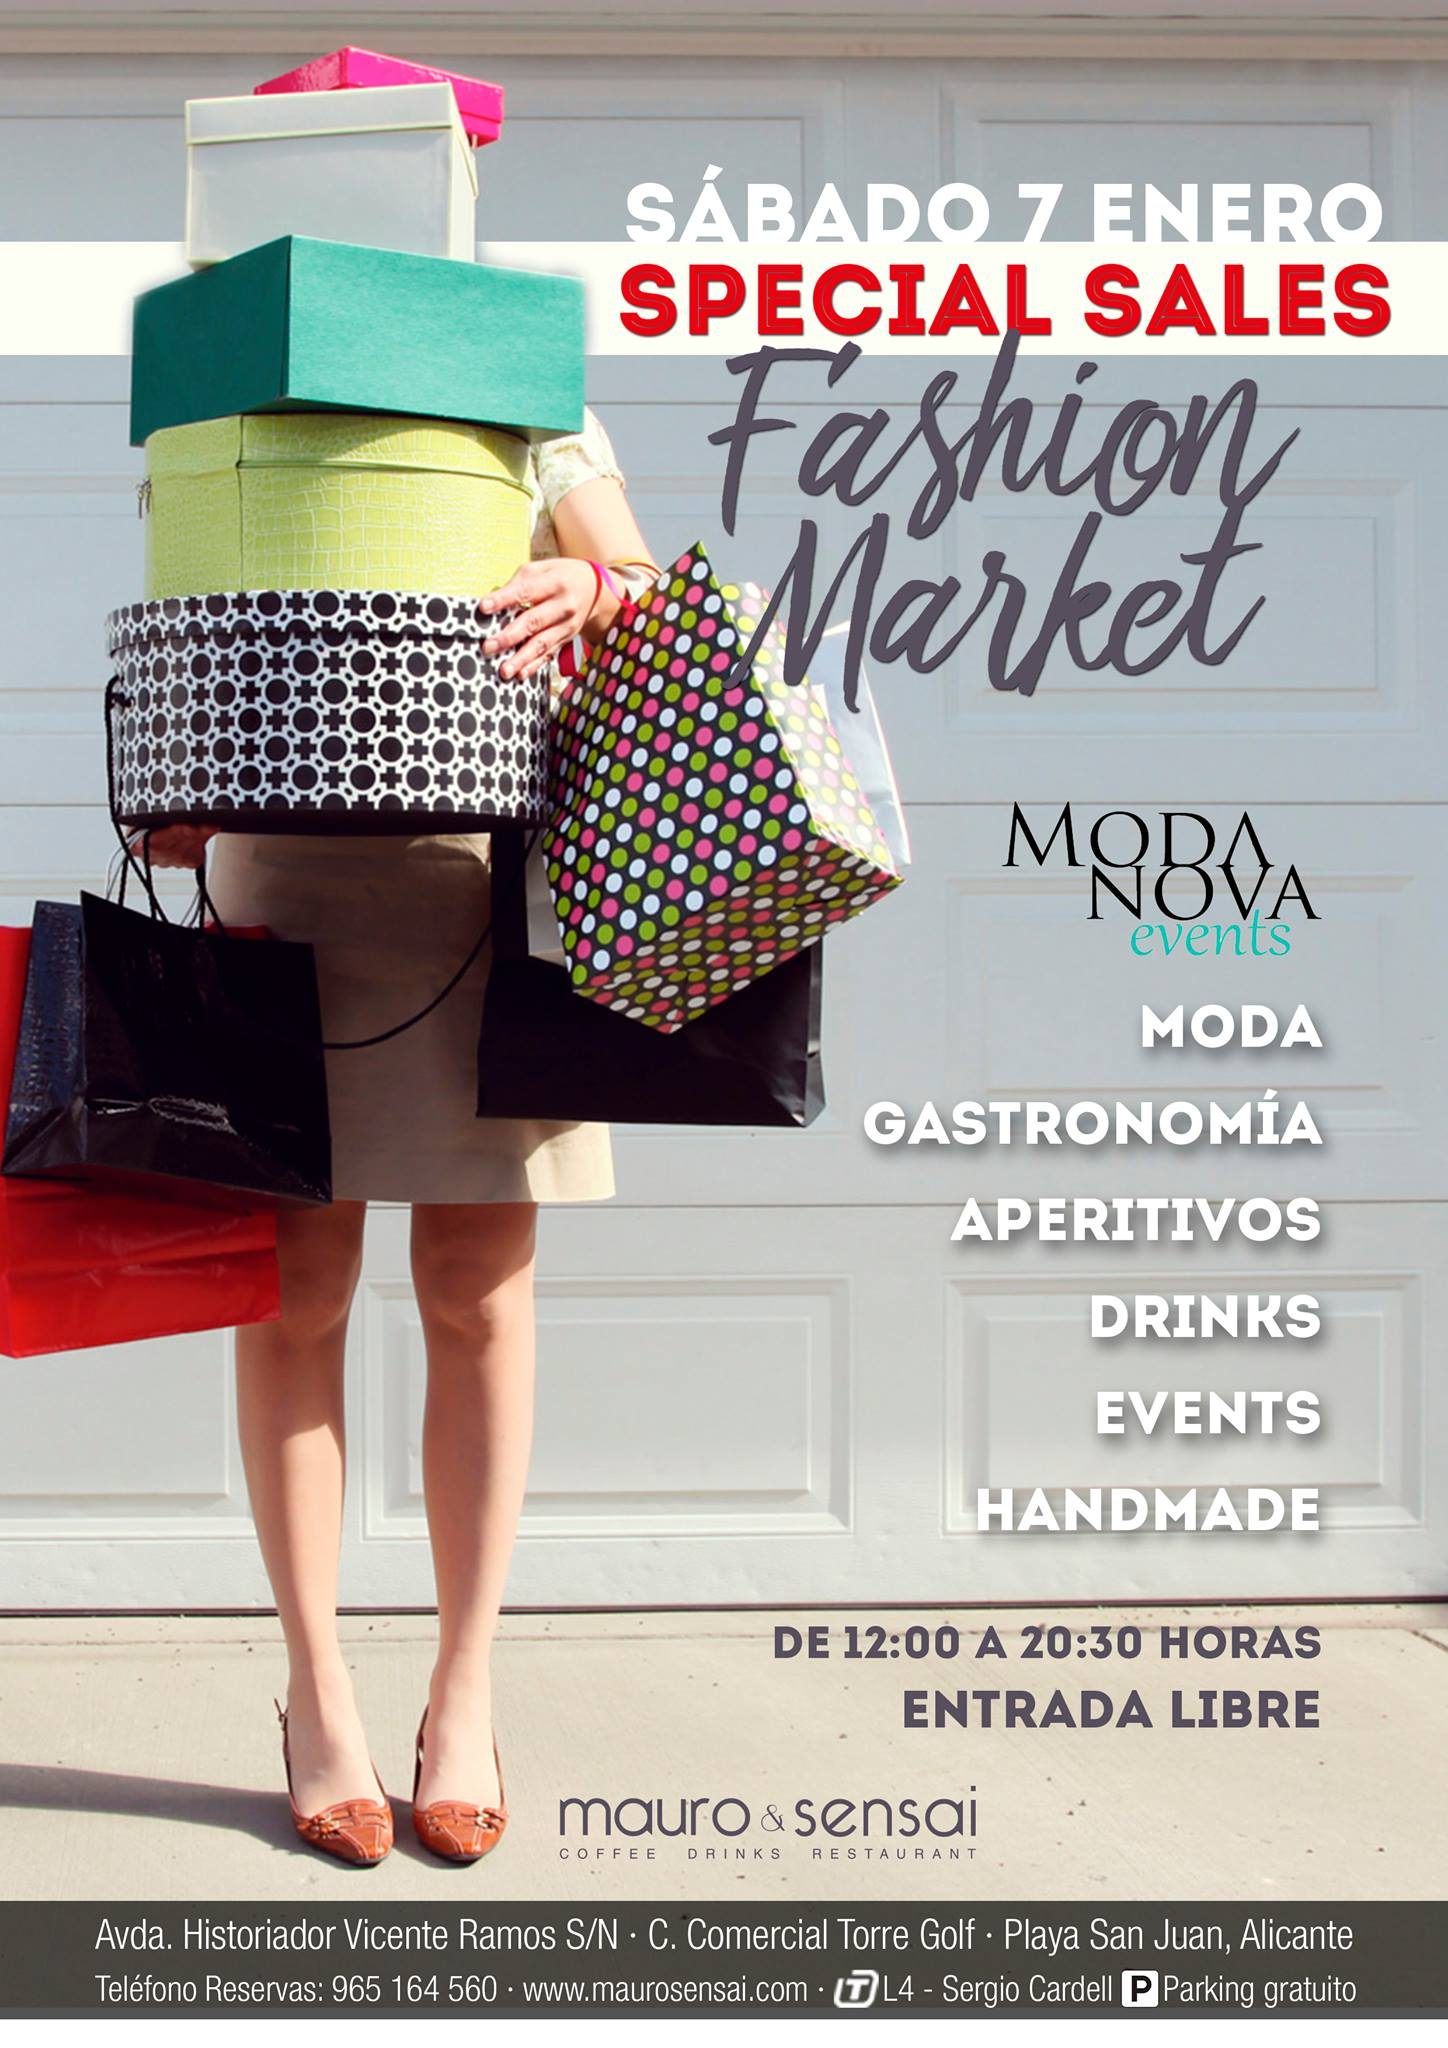 Fashion_Market_ModaNovaEvents